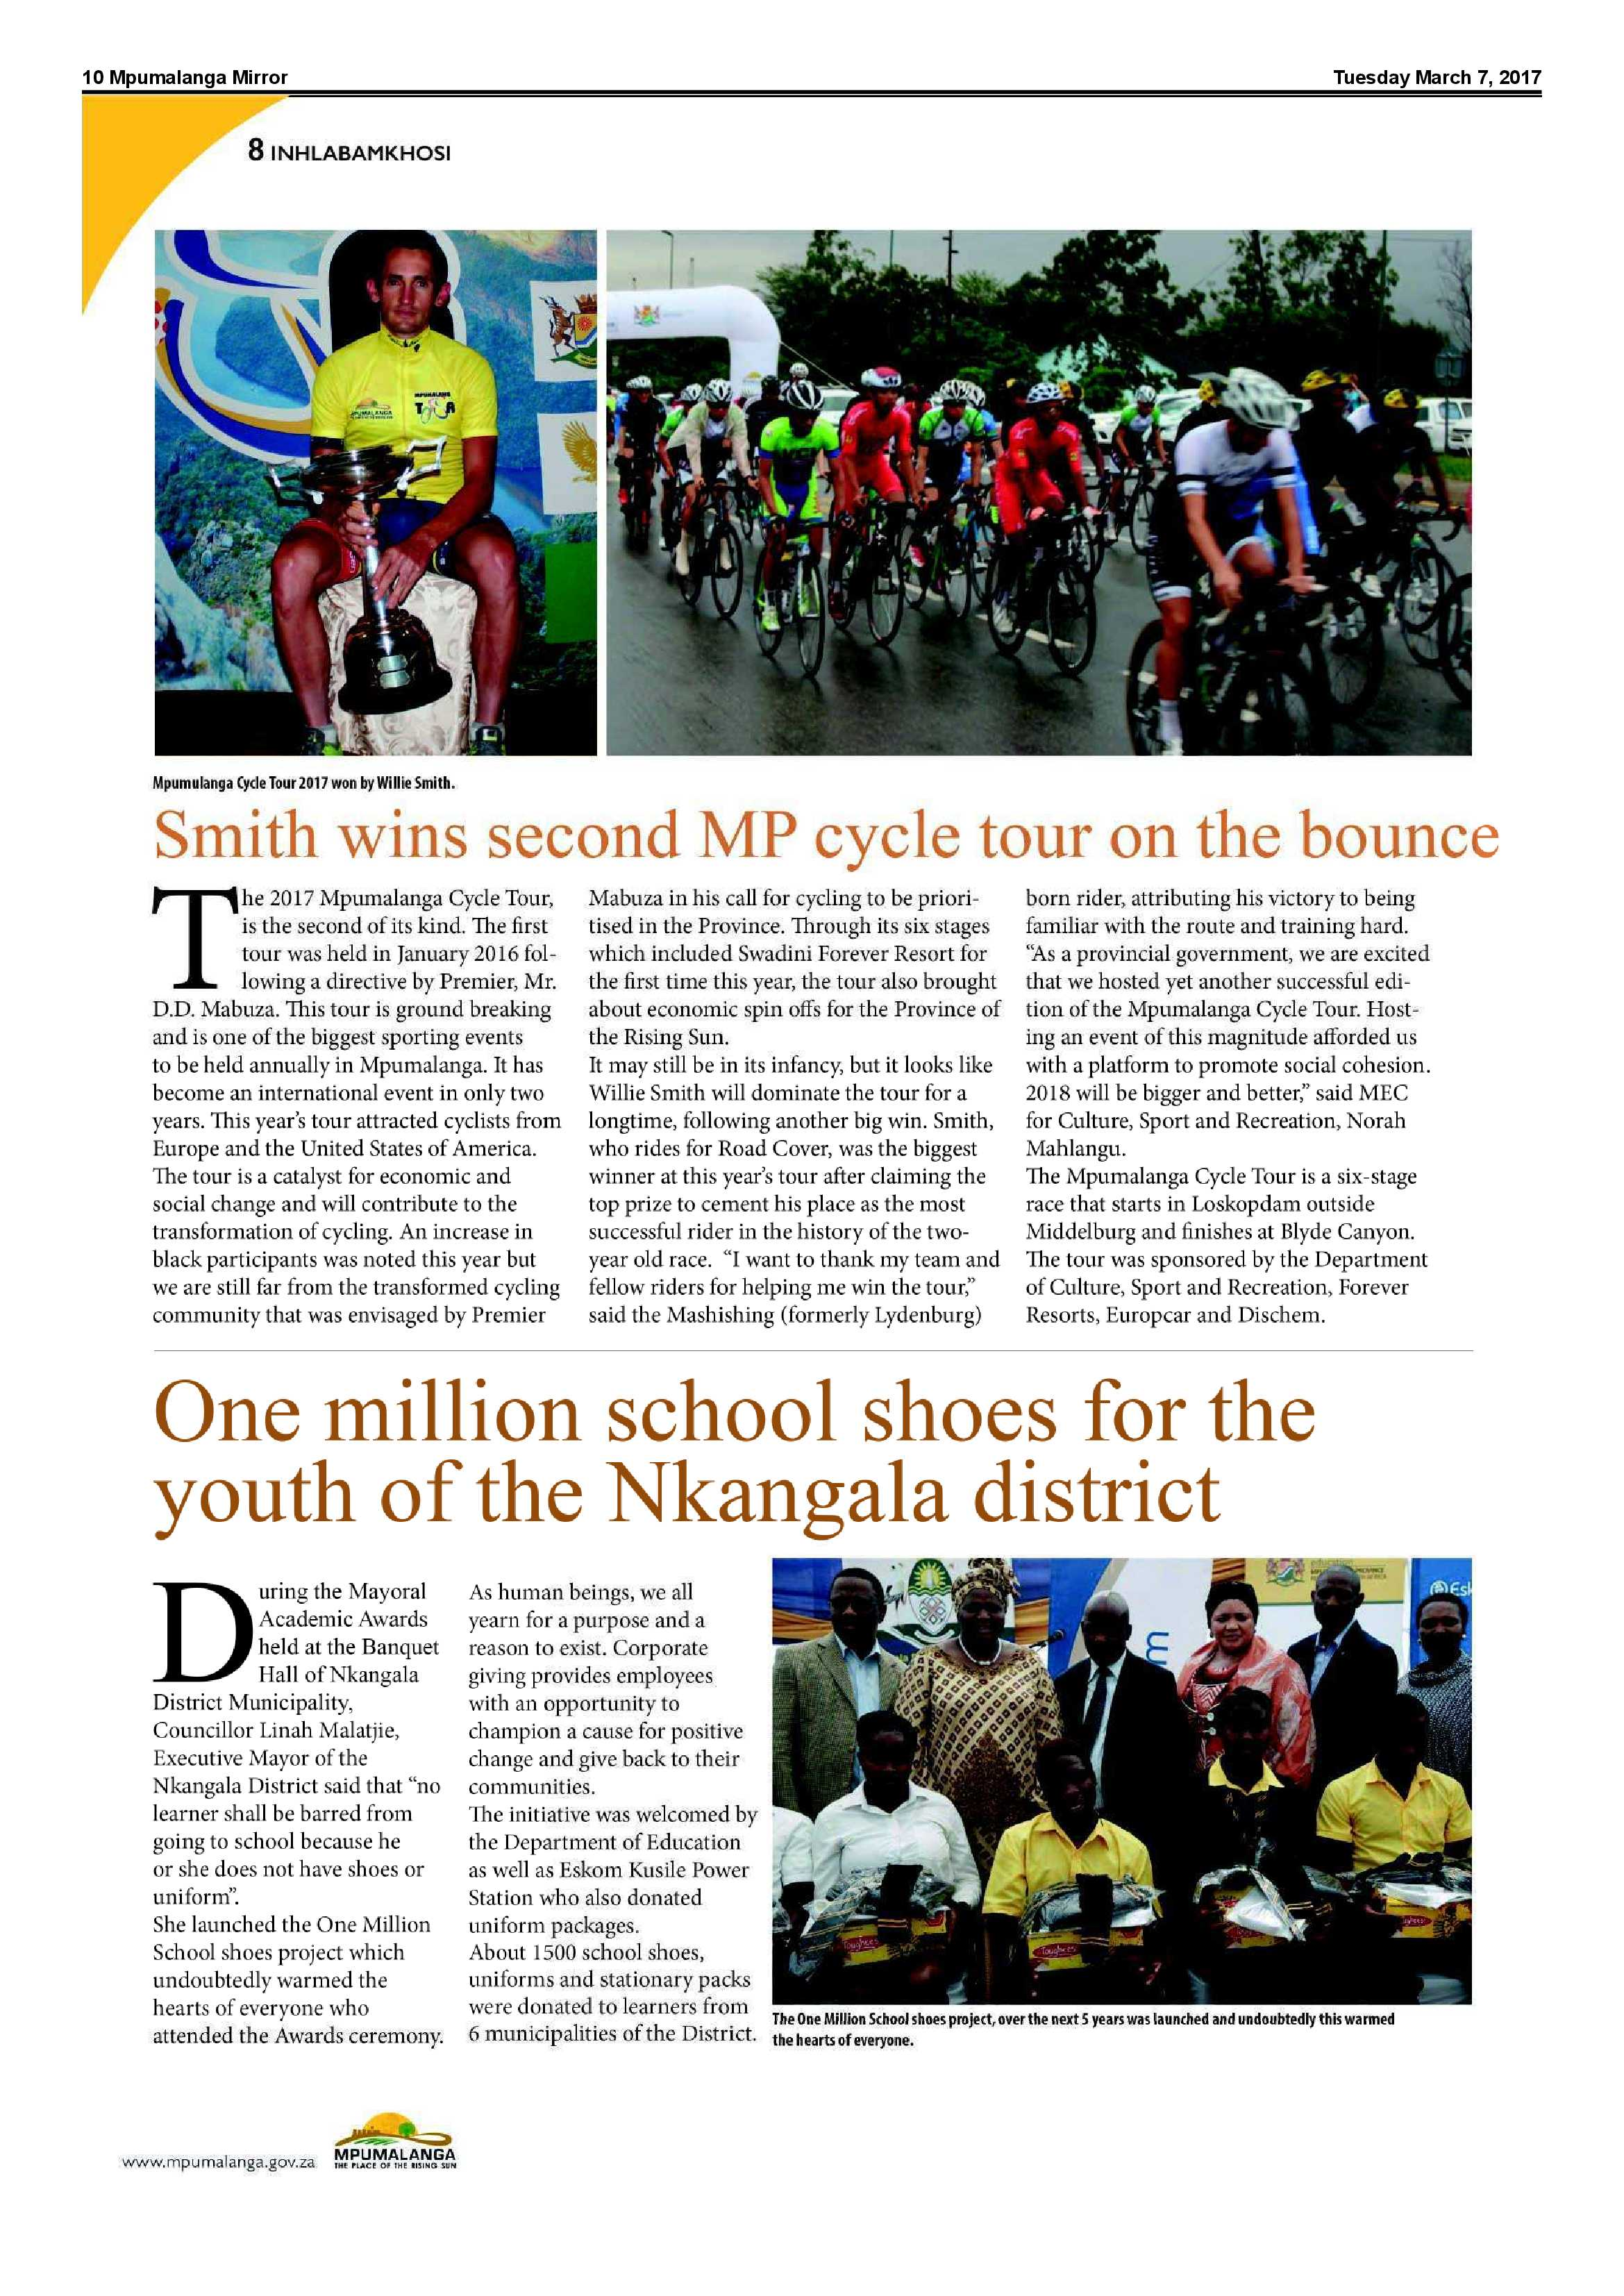 mp-mirror-7-march-2017-epapers-page-10